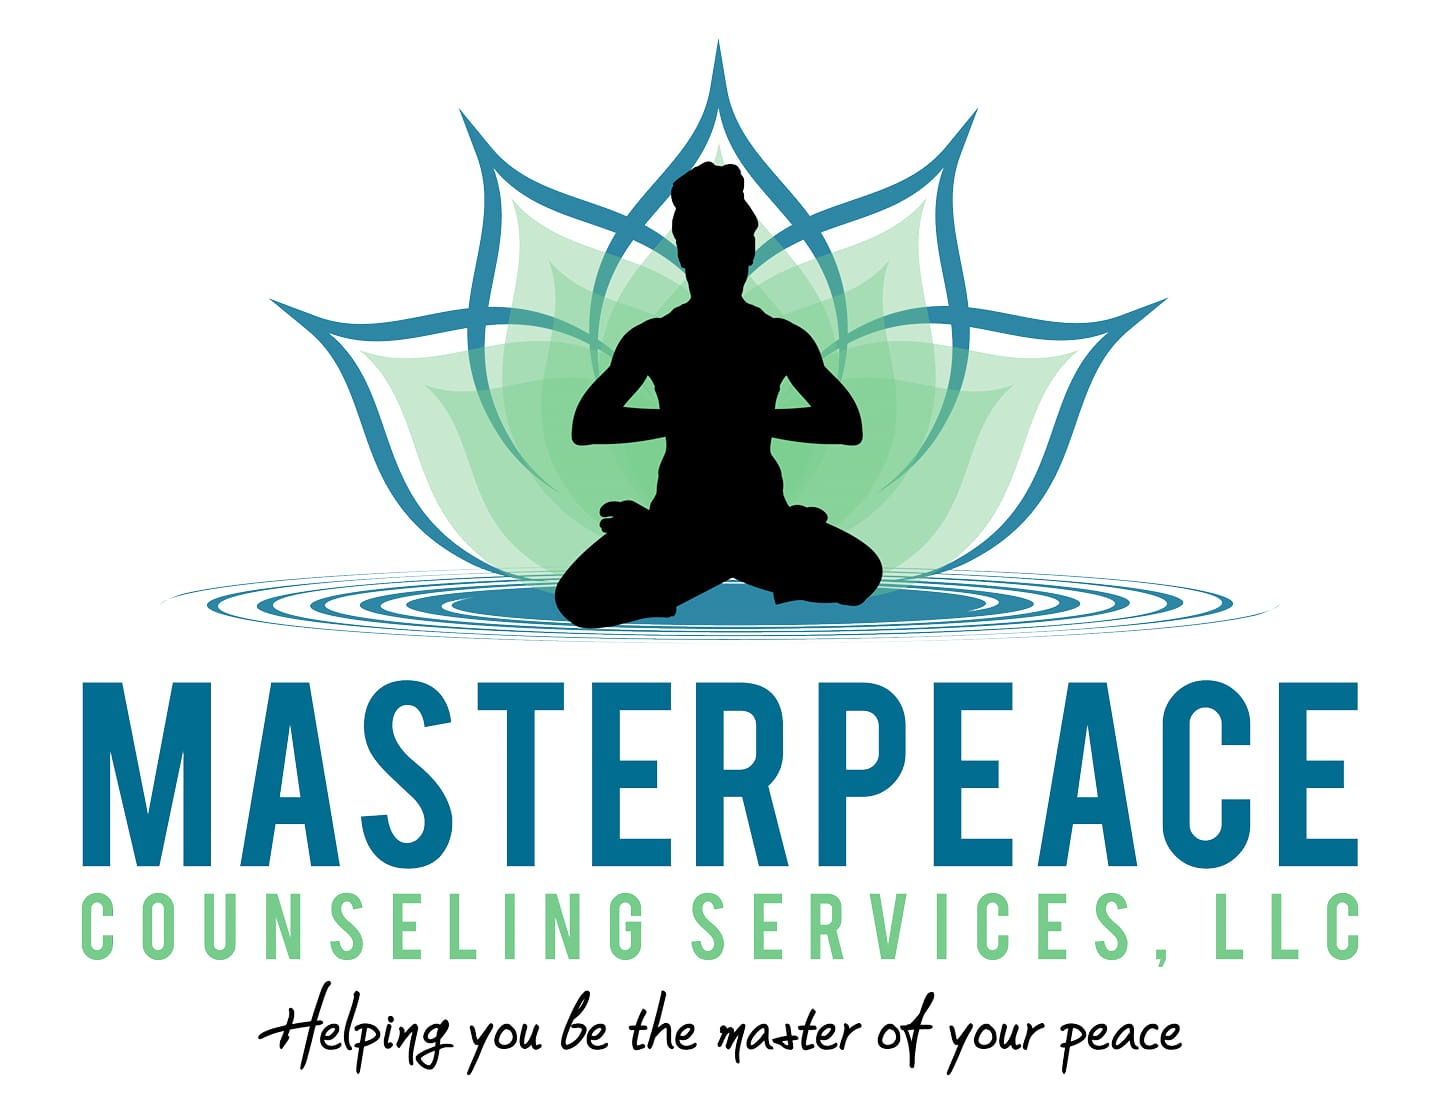 Masterpeace Counseling Services, LLC